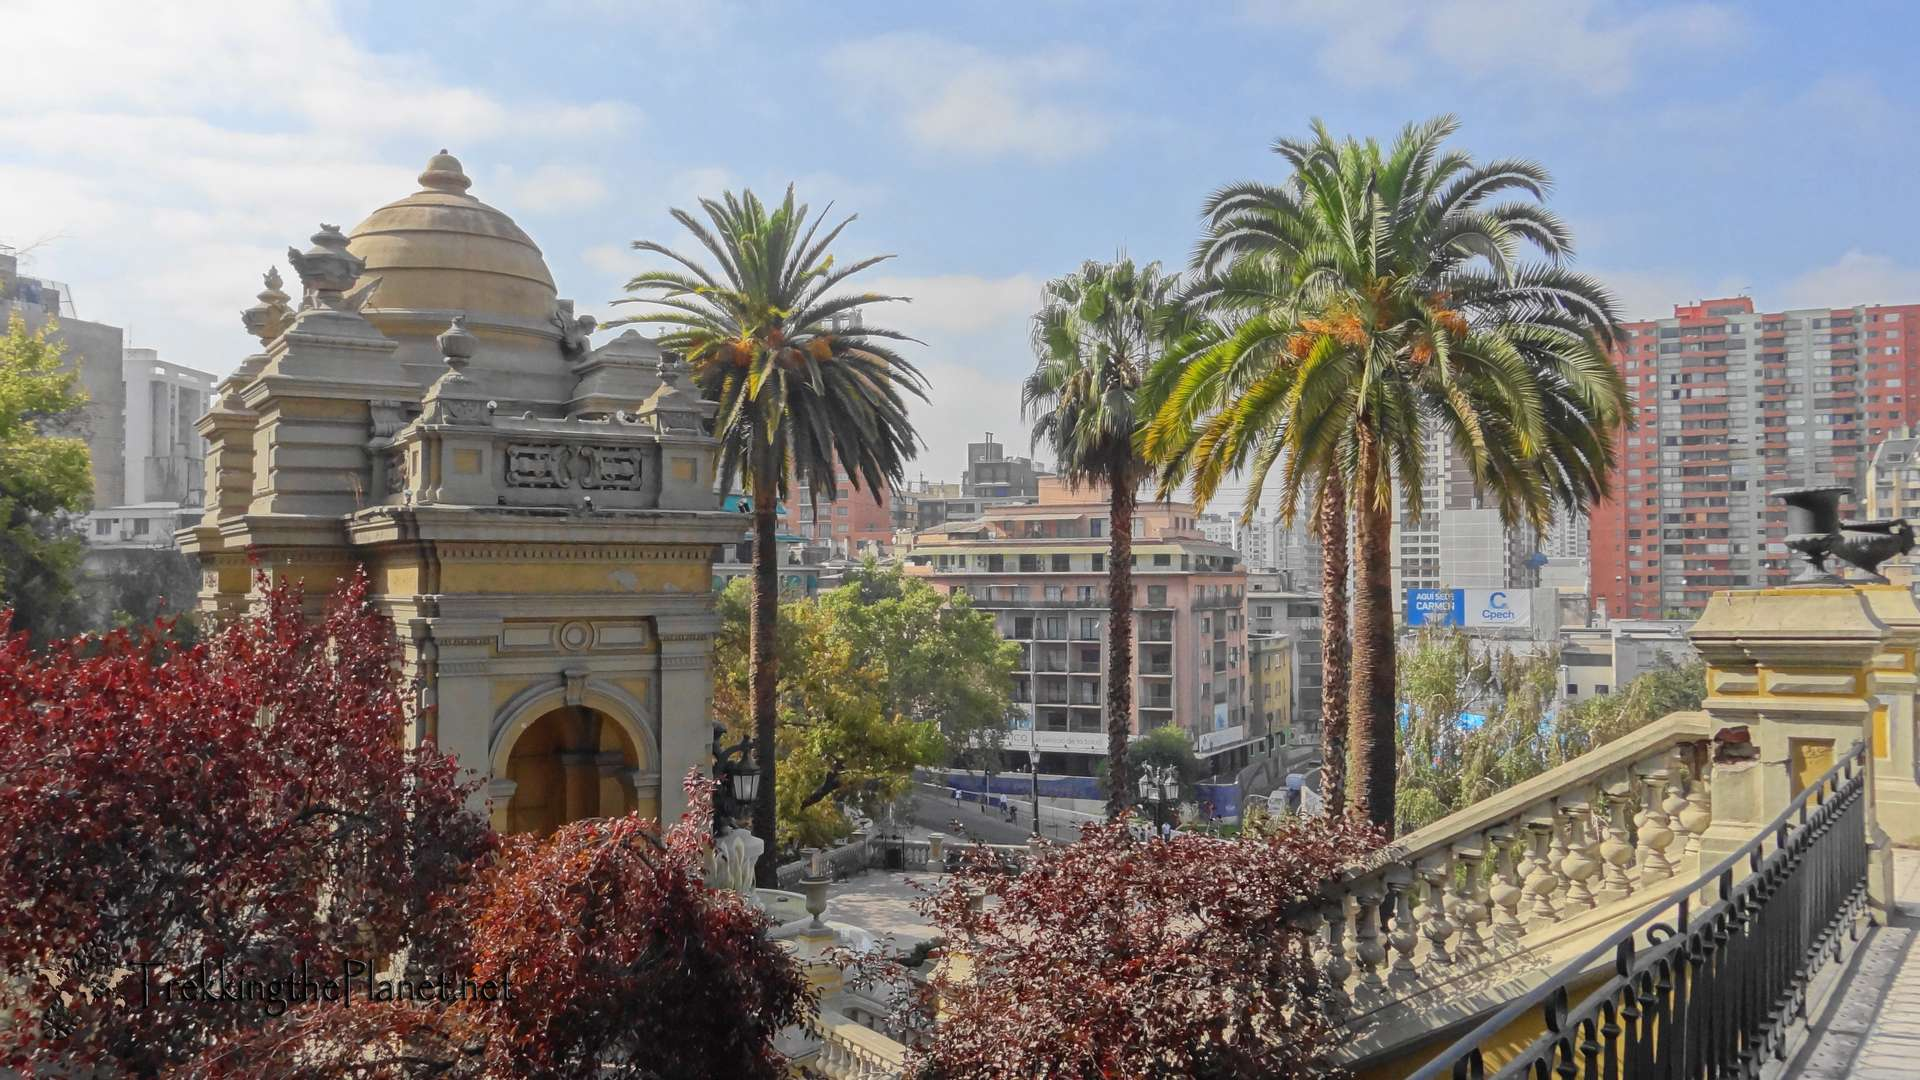 Santiago-chile-city-new-widescreen-wallpapers-in-high-resolution-free.jpg